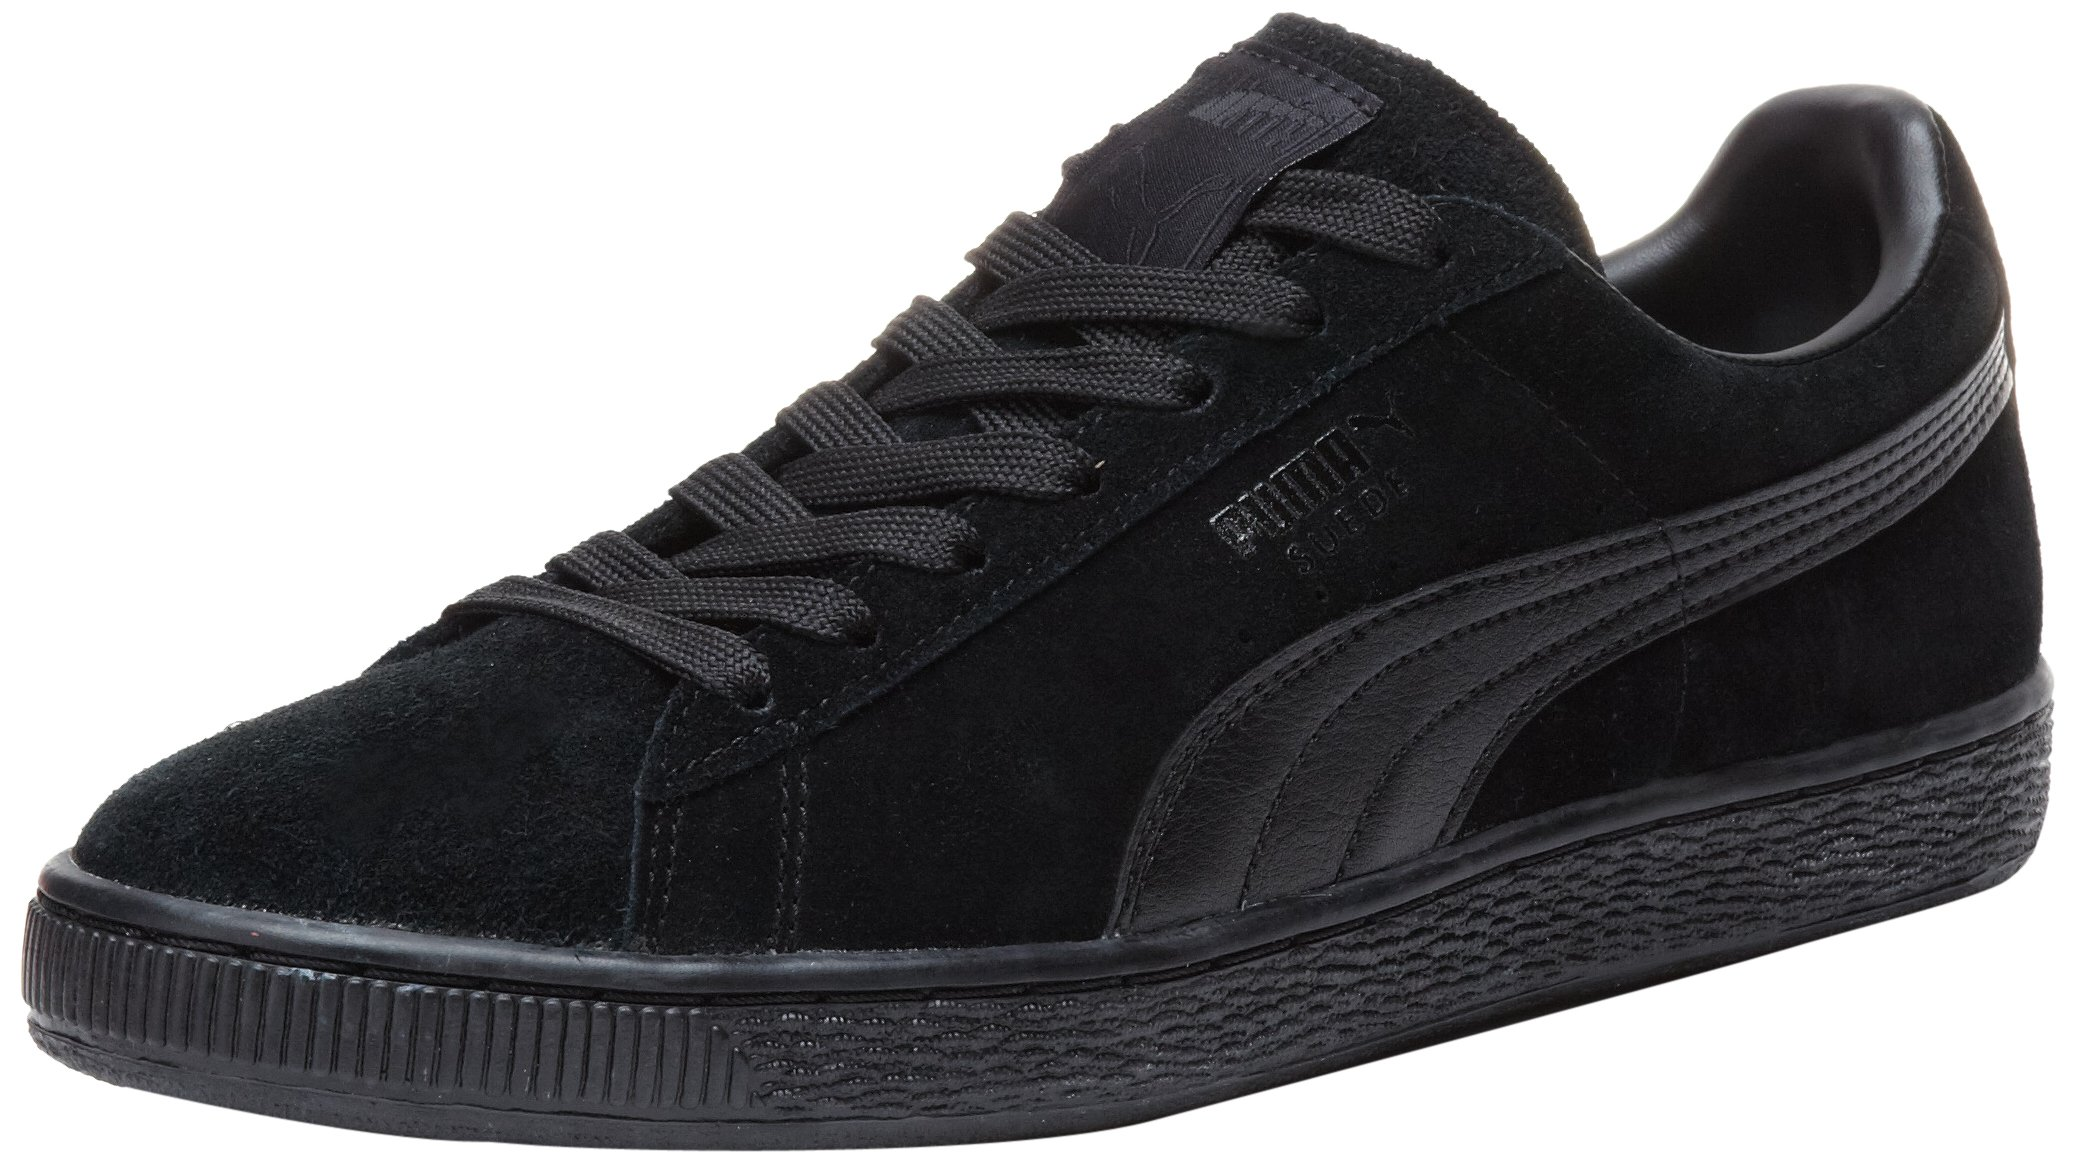 PUMA Suede Classic Leather Formstrip Sneaker,Black/Black,9 D(M) US